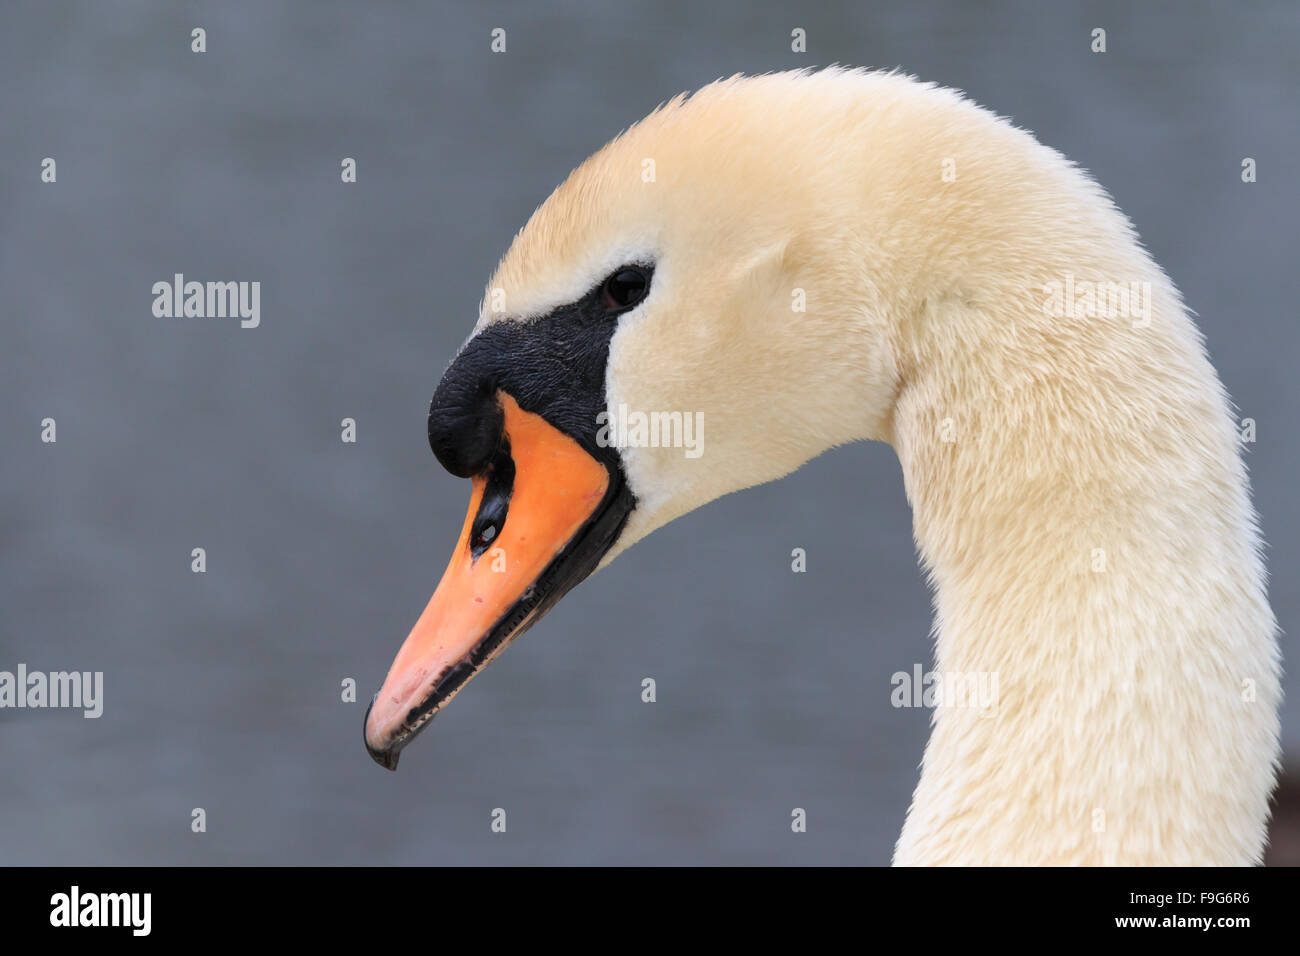 Close up on a Mute Swan's head in the UK - Stock Image